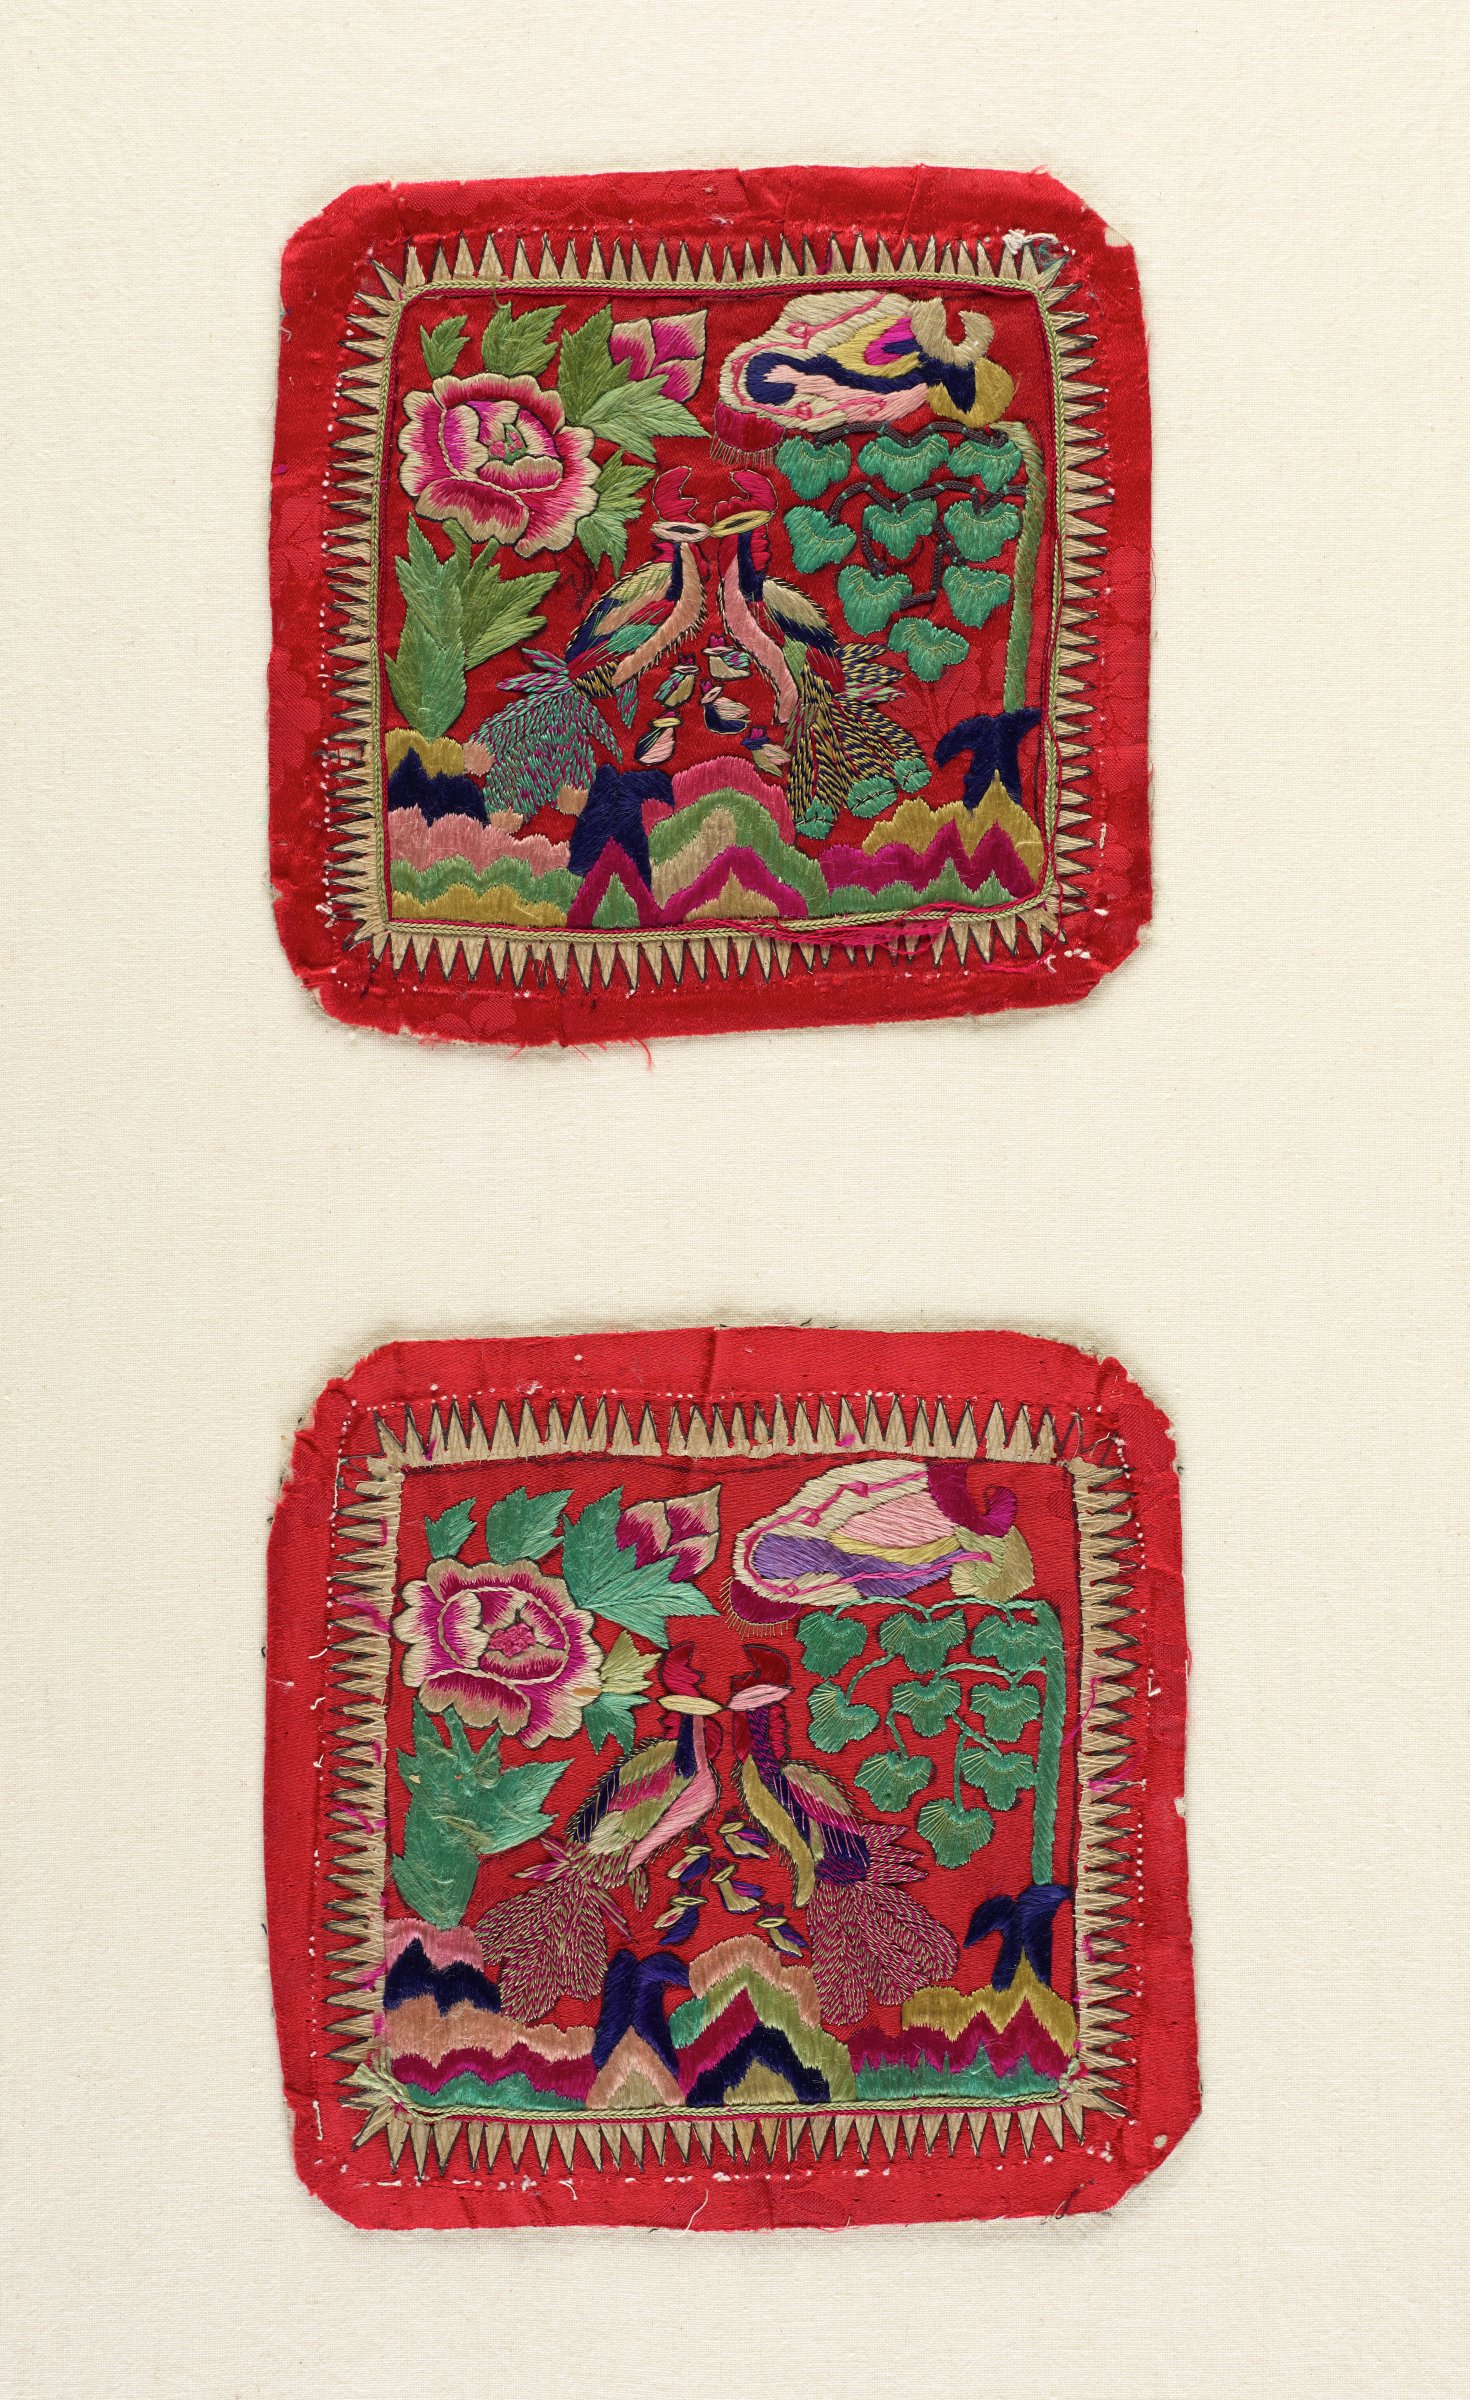 Pair of square pillow ends with embroidered designs of love birds with baby chicks on red background